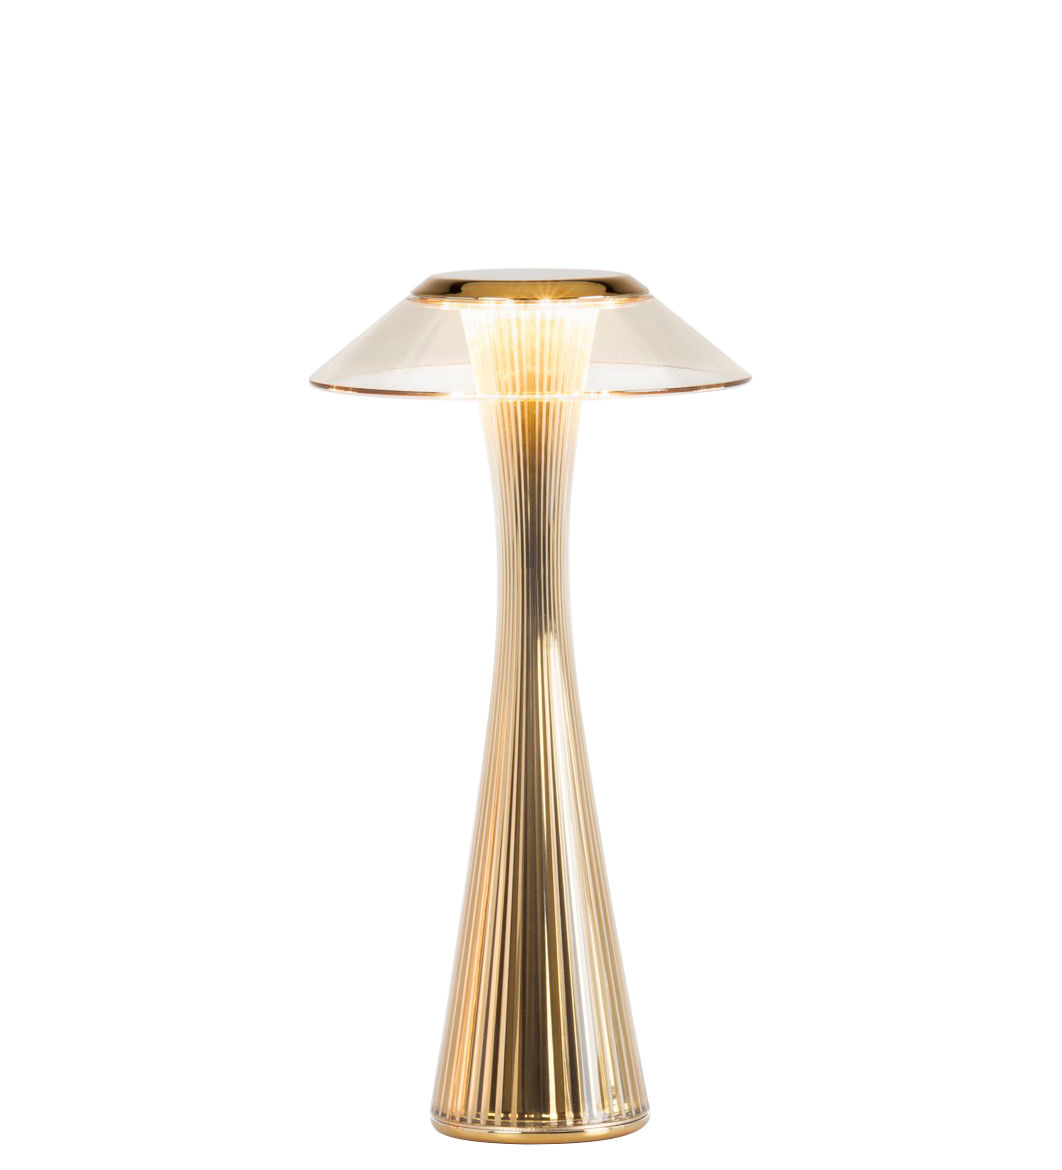 Lighting - Table Lamps - Space Table lamp - / LED - Rechargeable by Kartell - Gold - ABS, PMMA